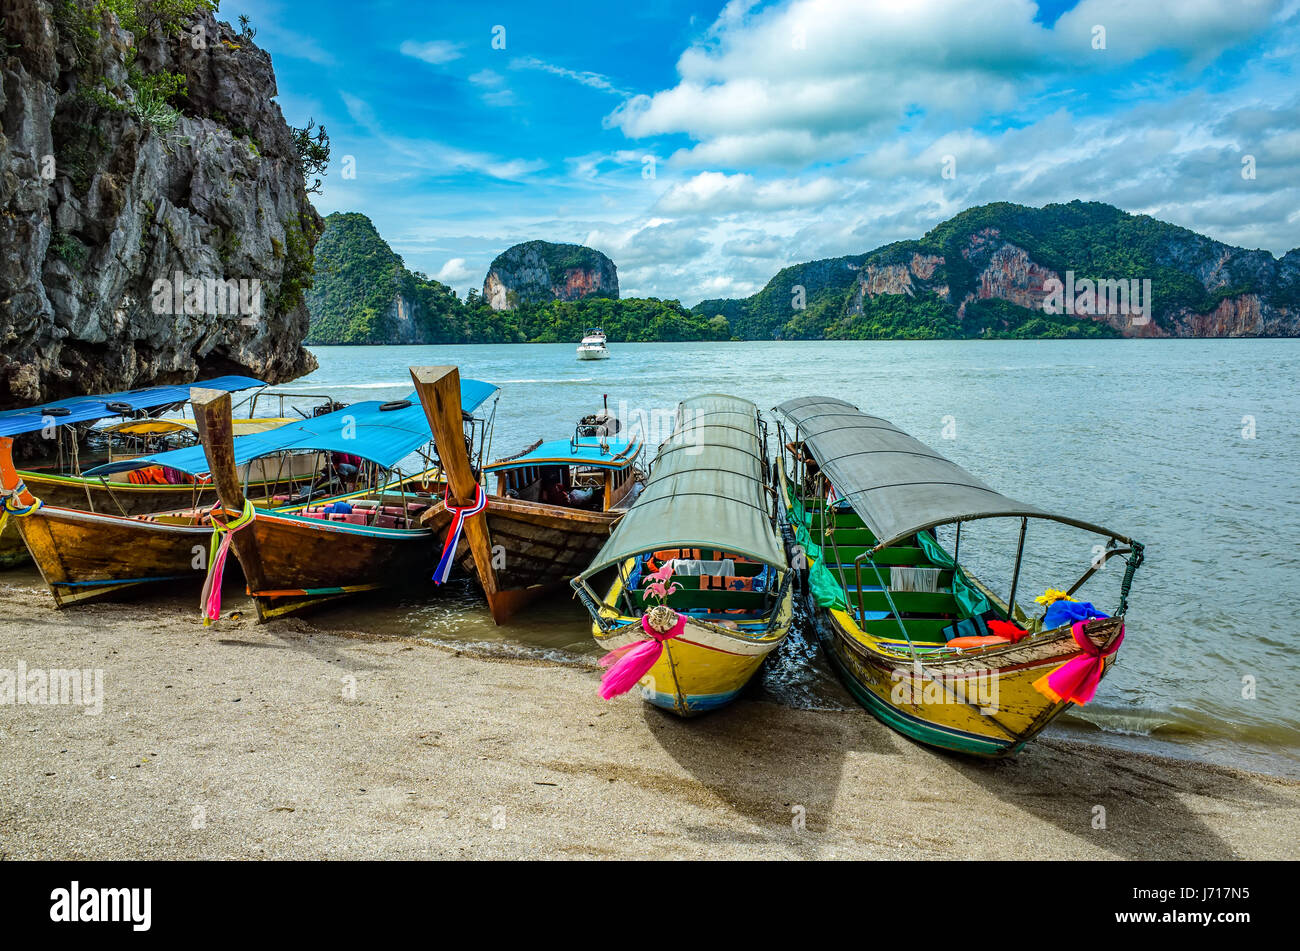 Thai boat on the shore, Phuket - Stock Image